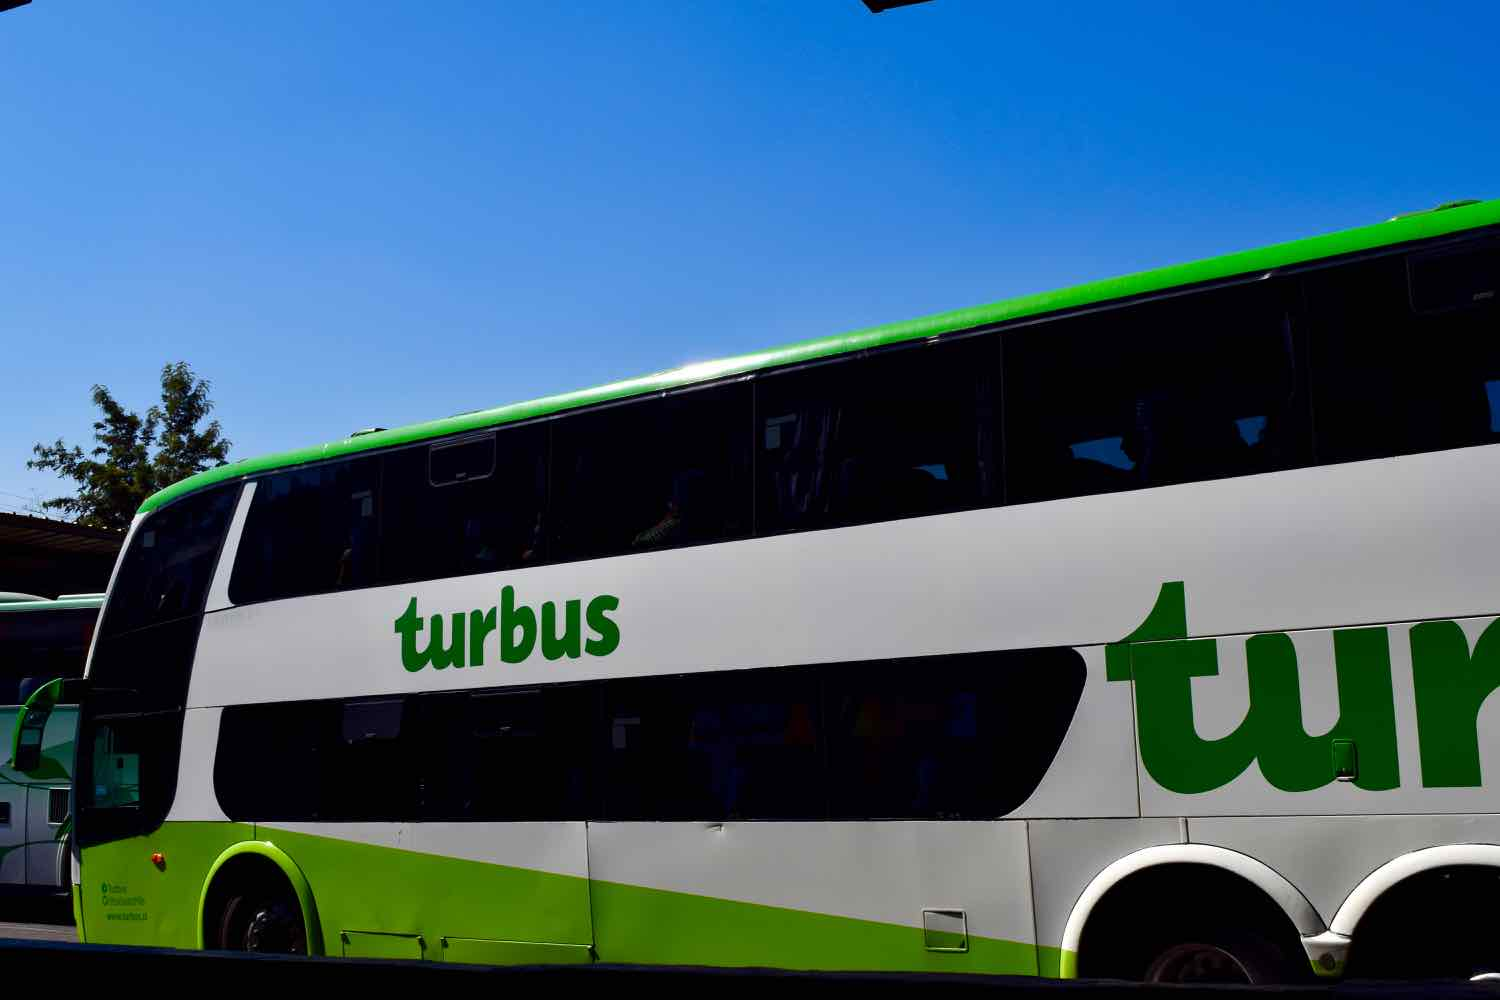 Turbus Chile - one of the main buses in Chile